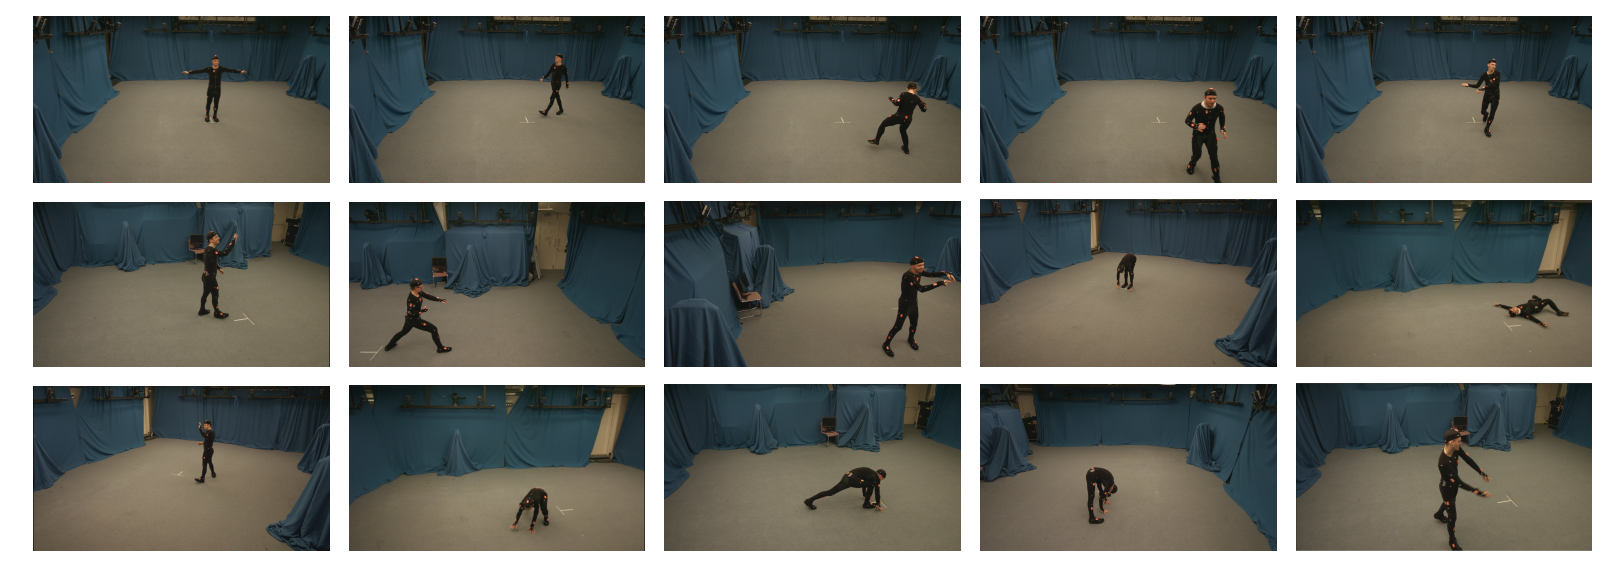 Total Capture: 3D Human Pose Estimation Fusing Video and Inertial